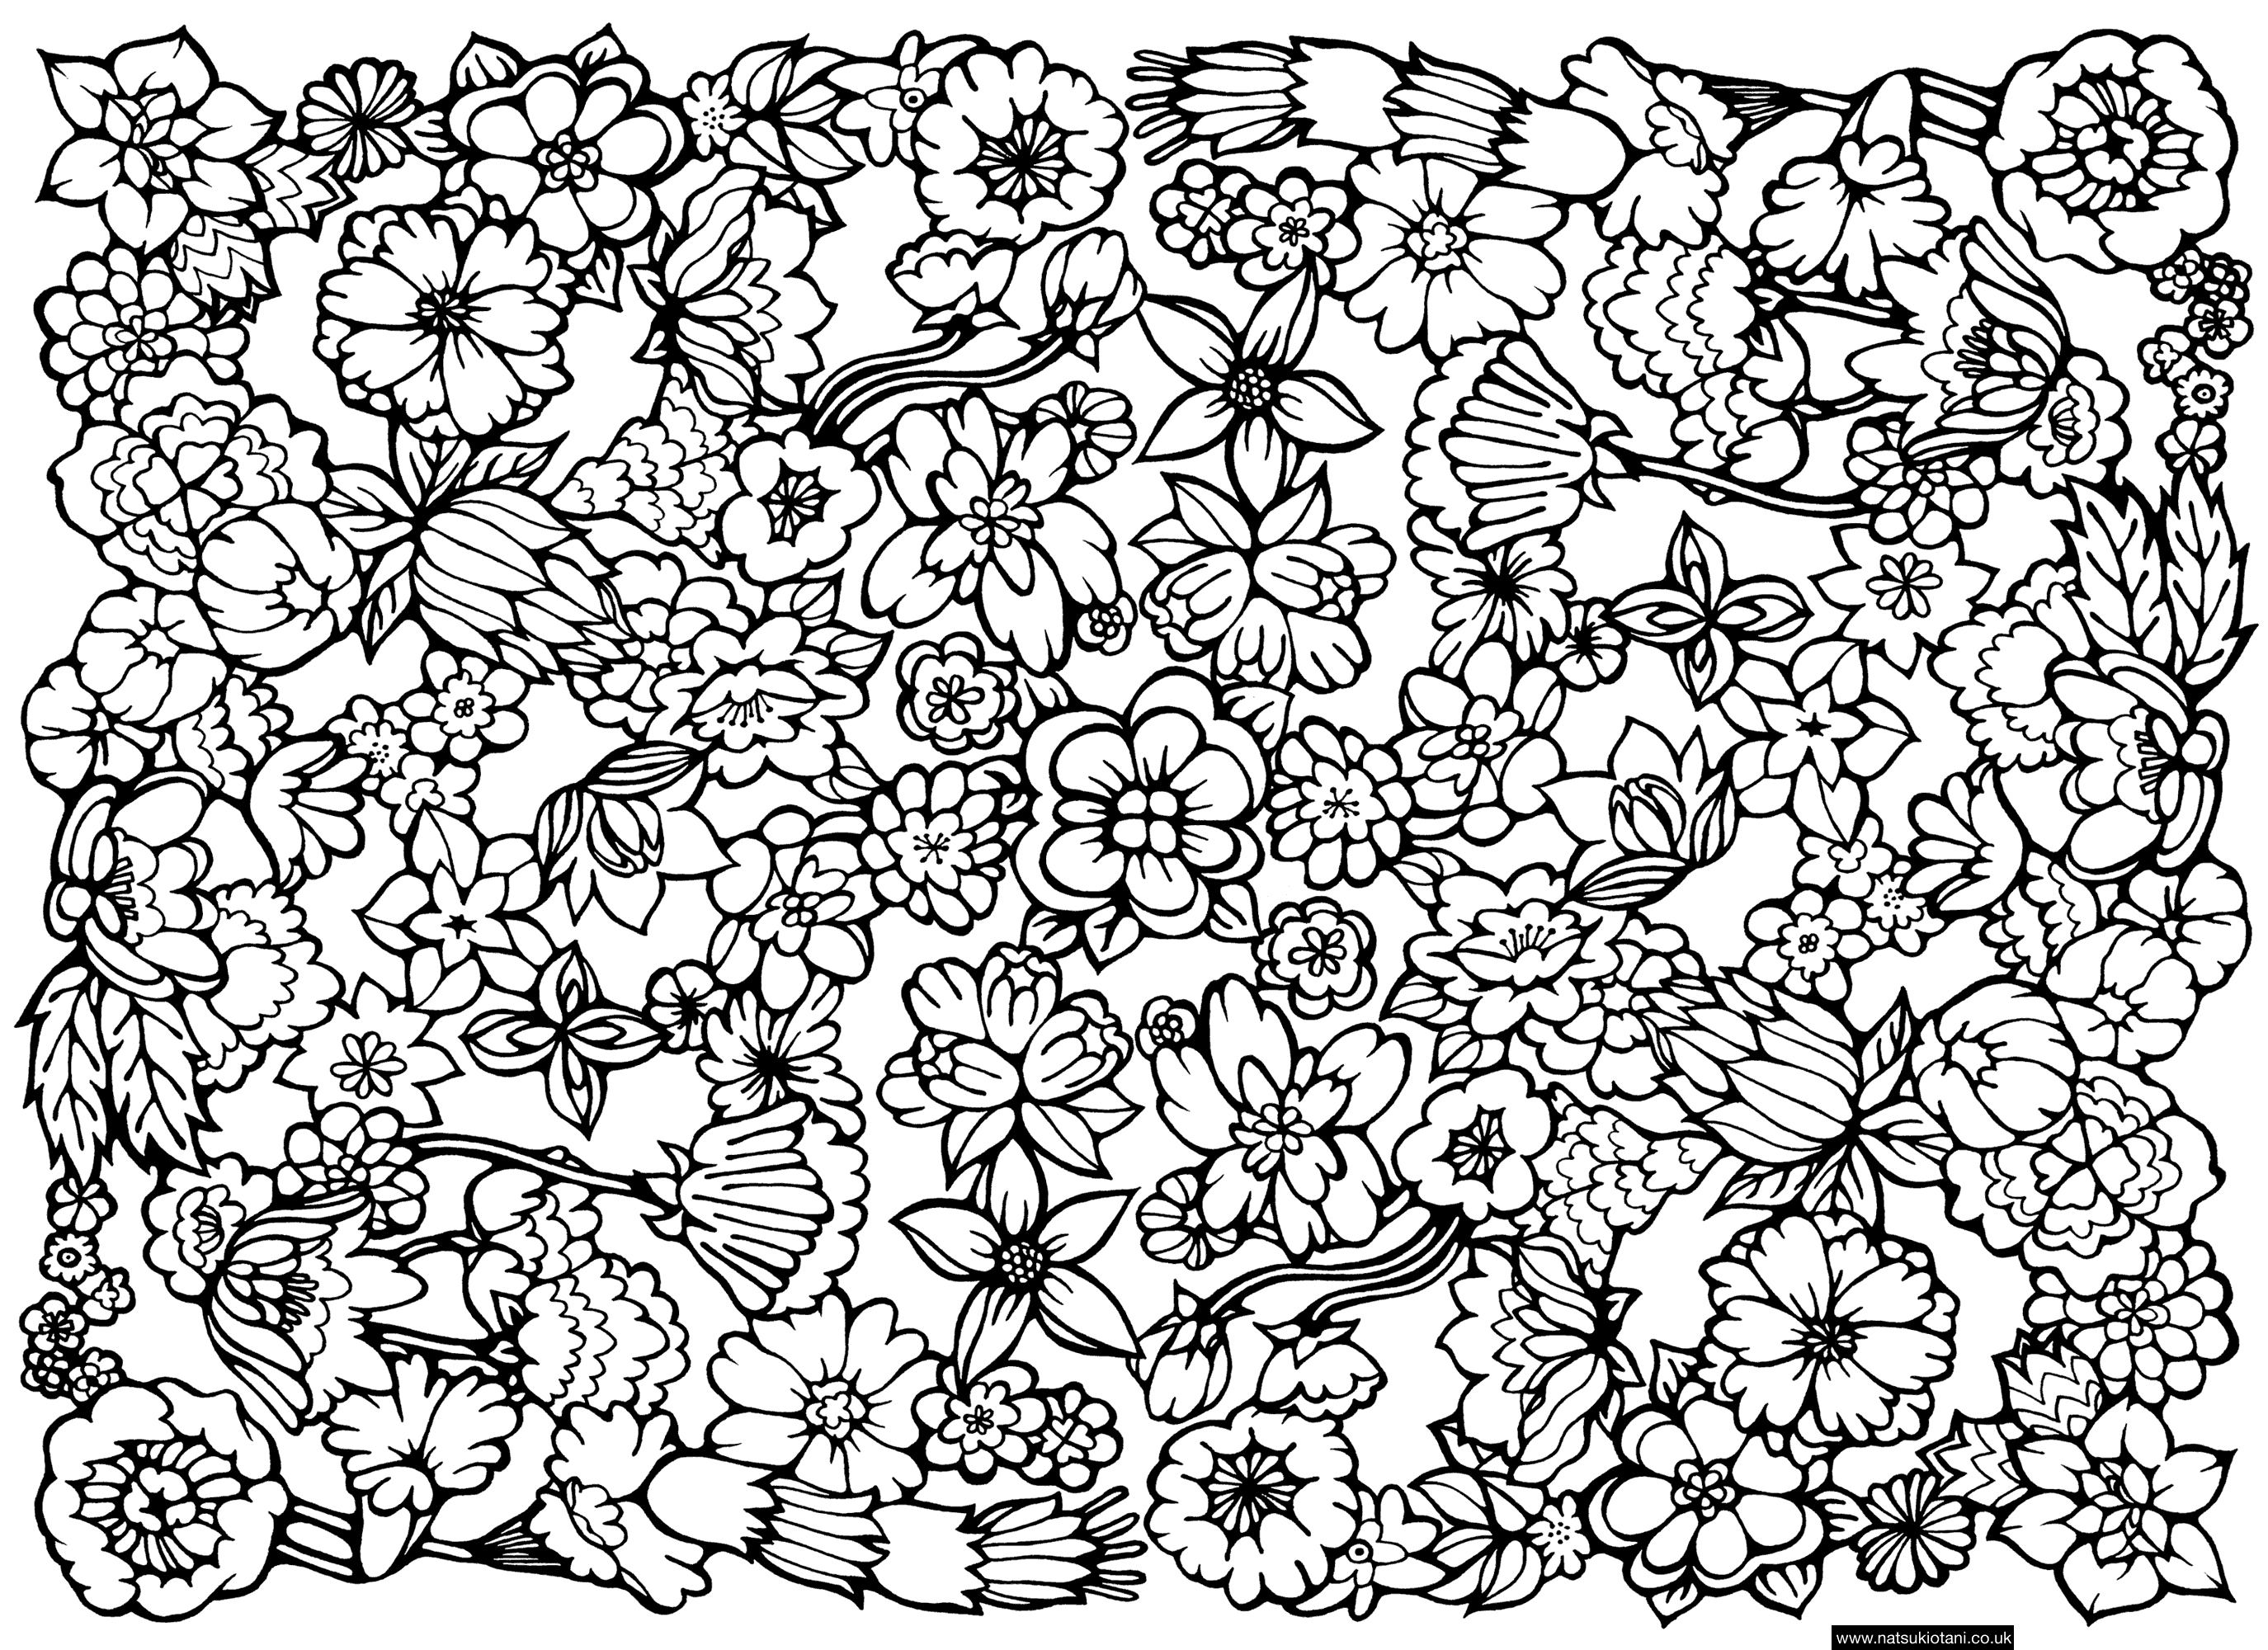 Hard Pattern Coloring Pages - Coloring Home